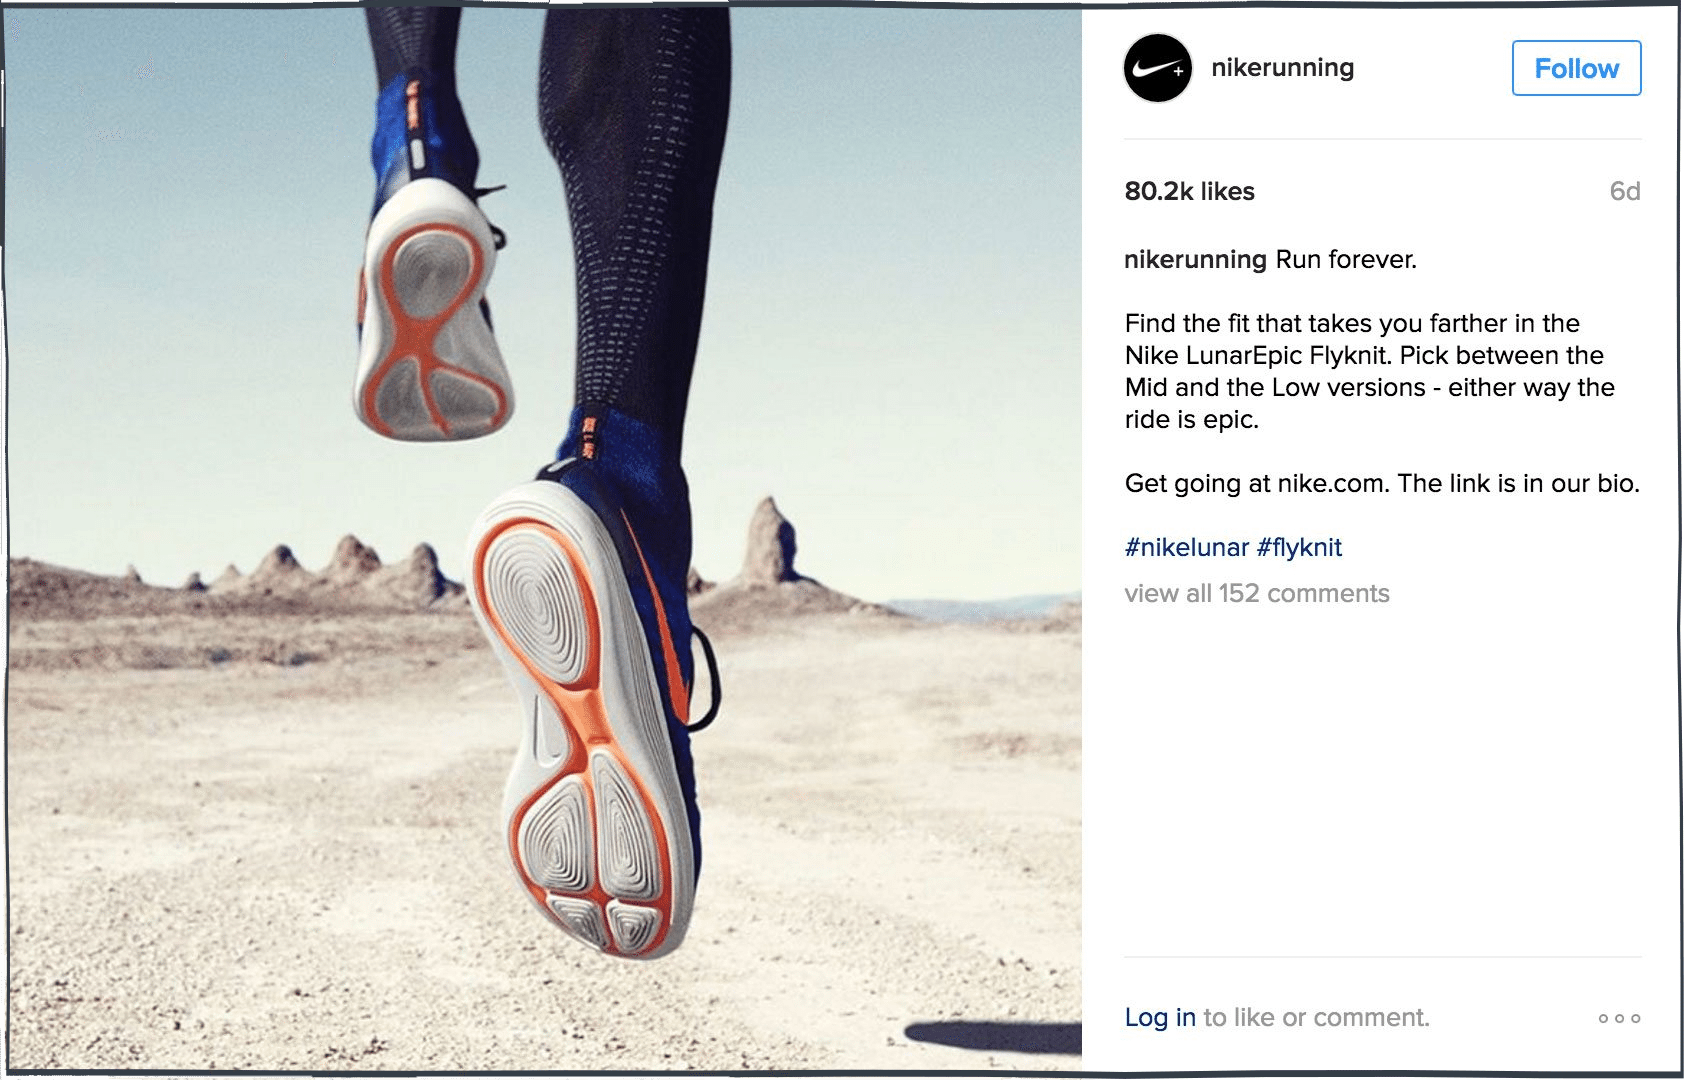 For example, Nike Running often make their trainers and running equipment  the focal point of their content: